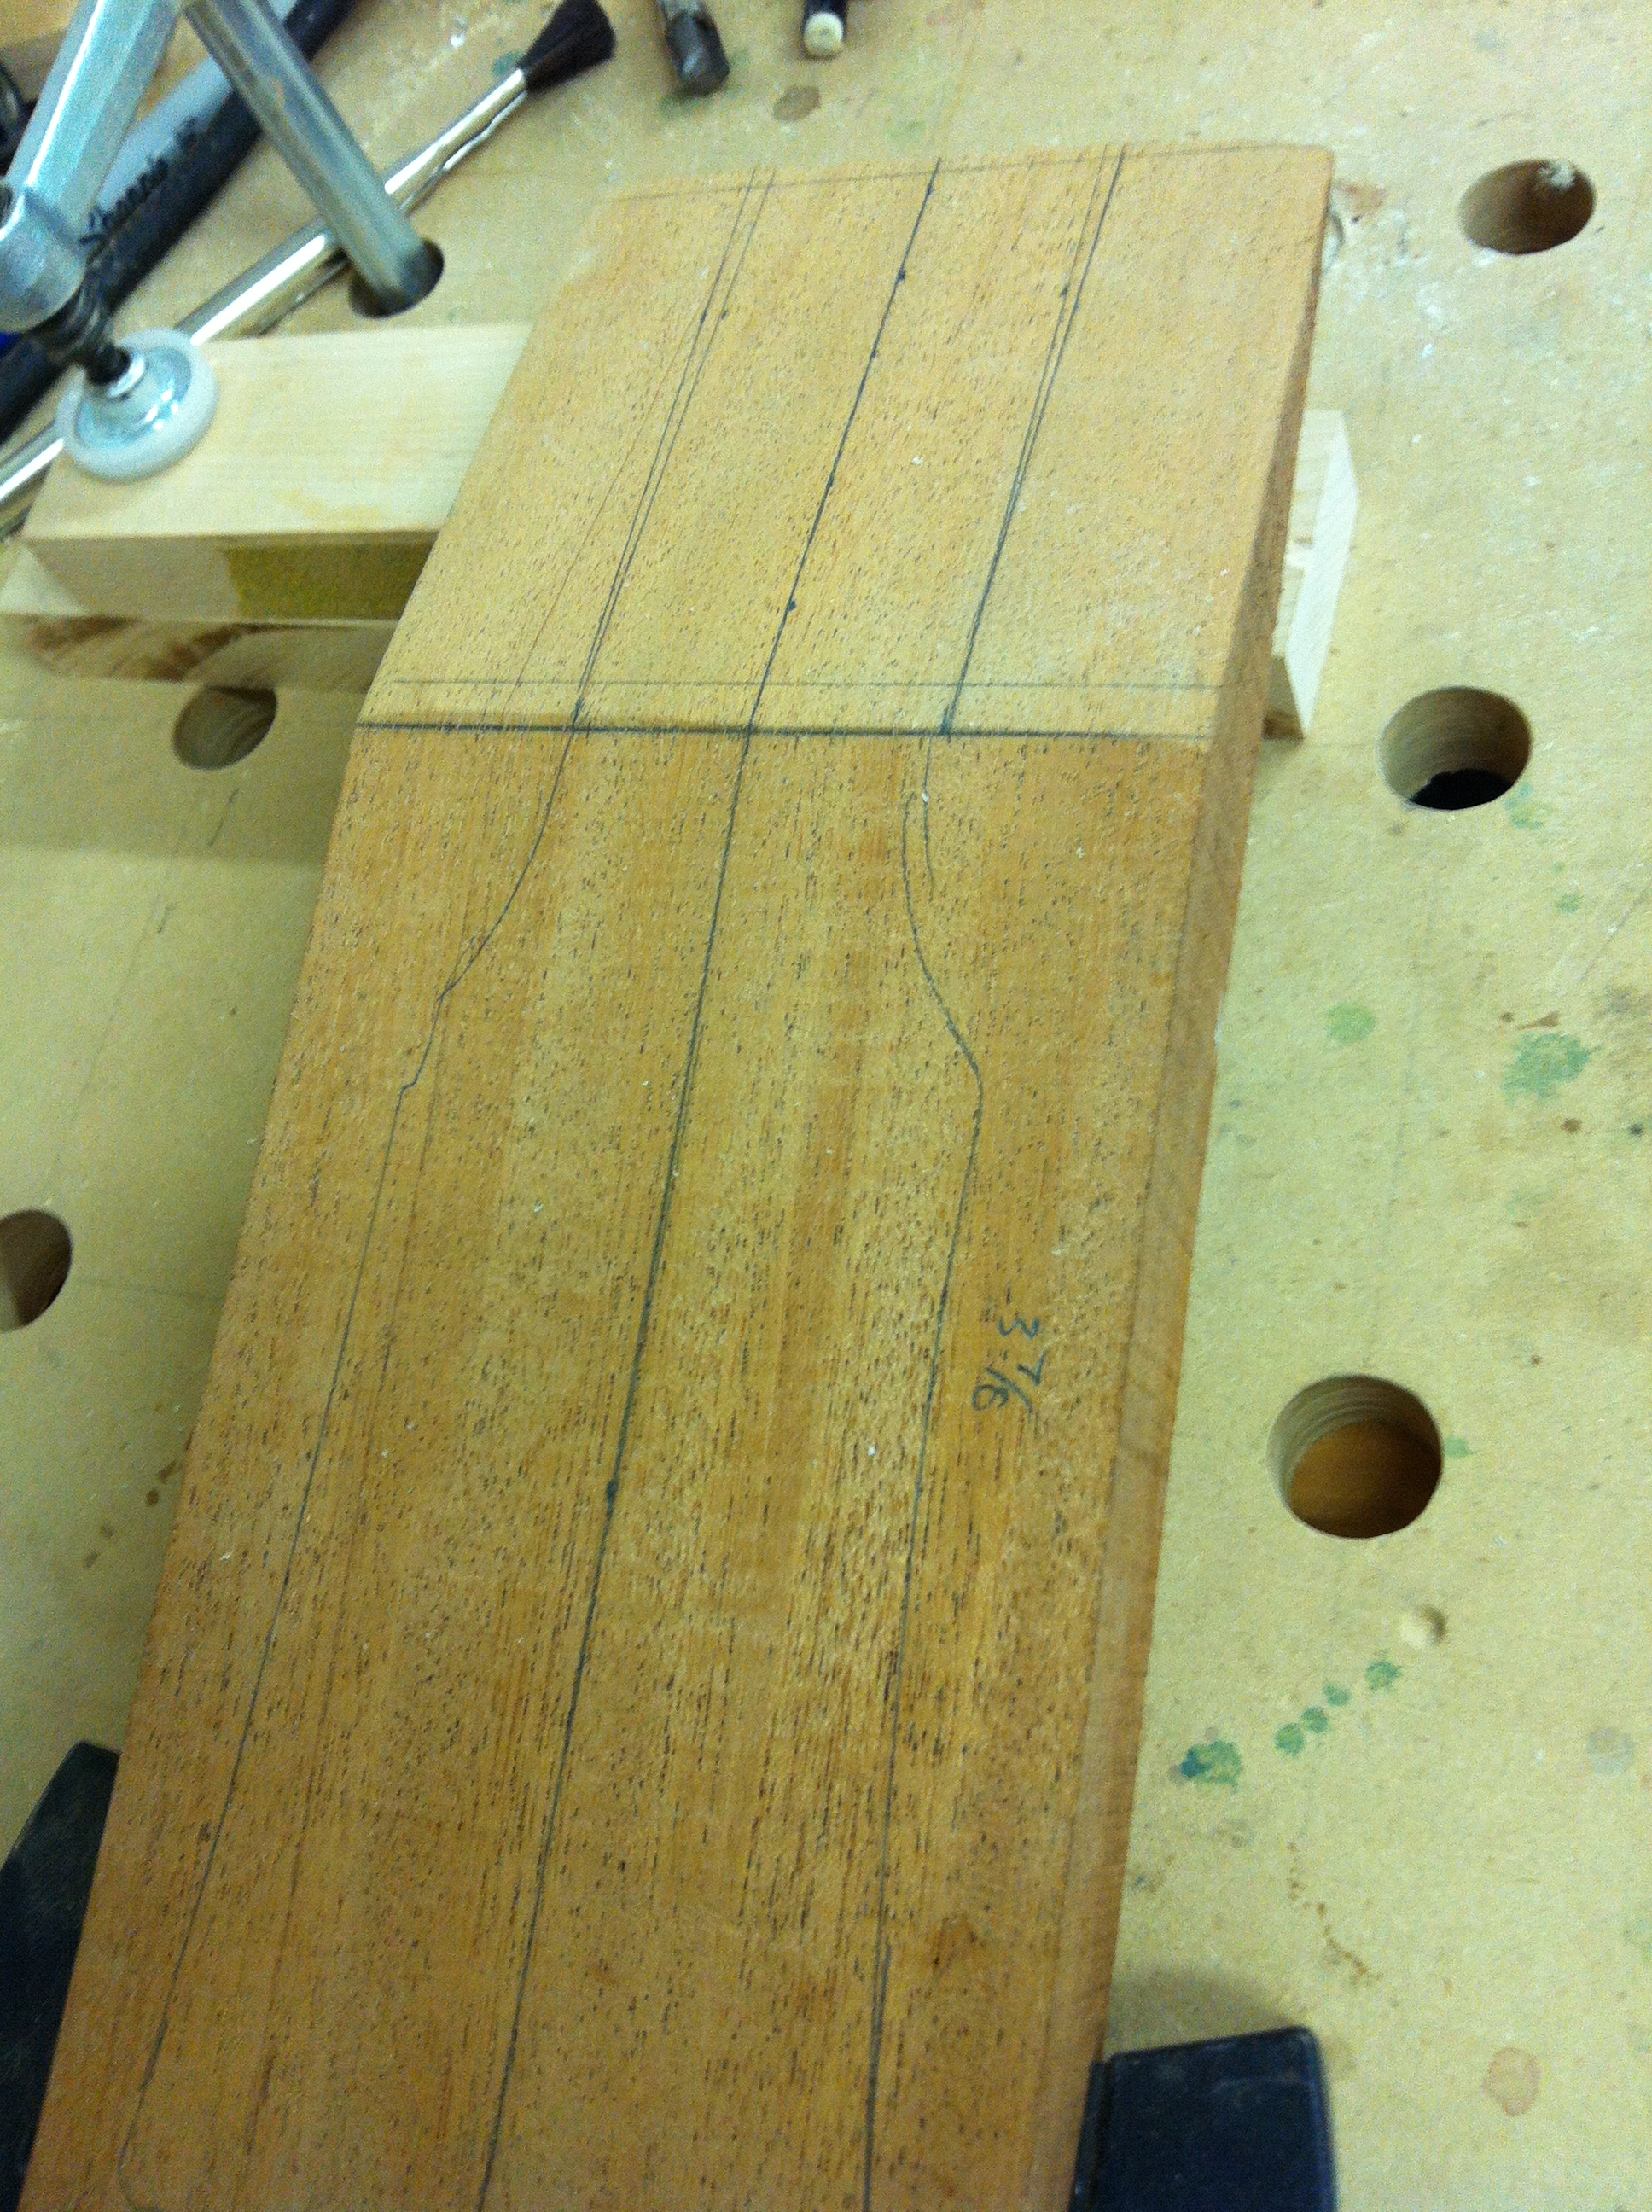 New headstock blank for Anderson's Les Paul